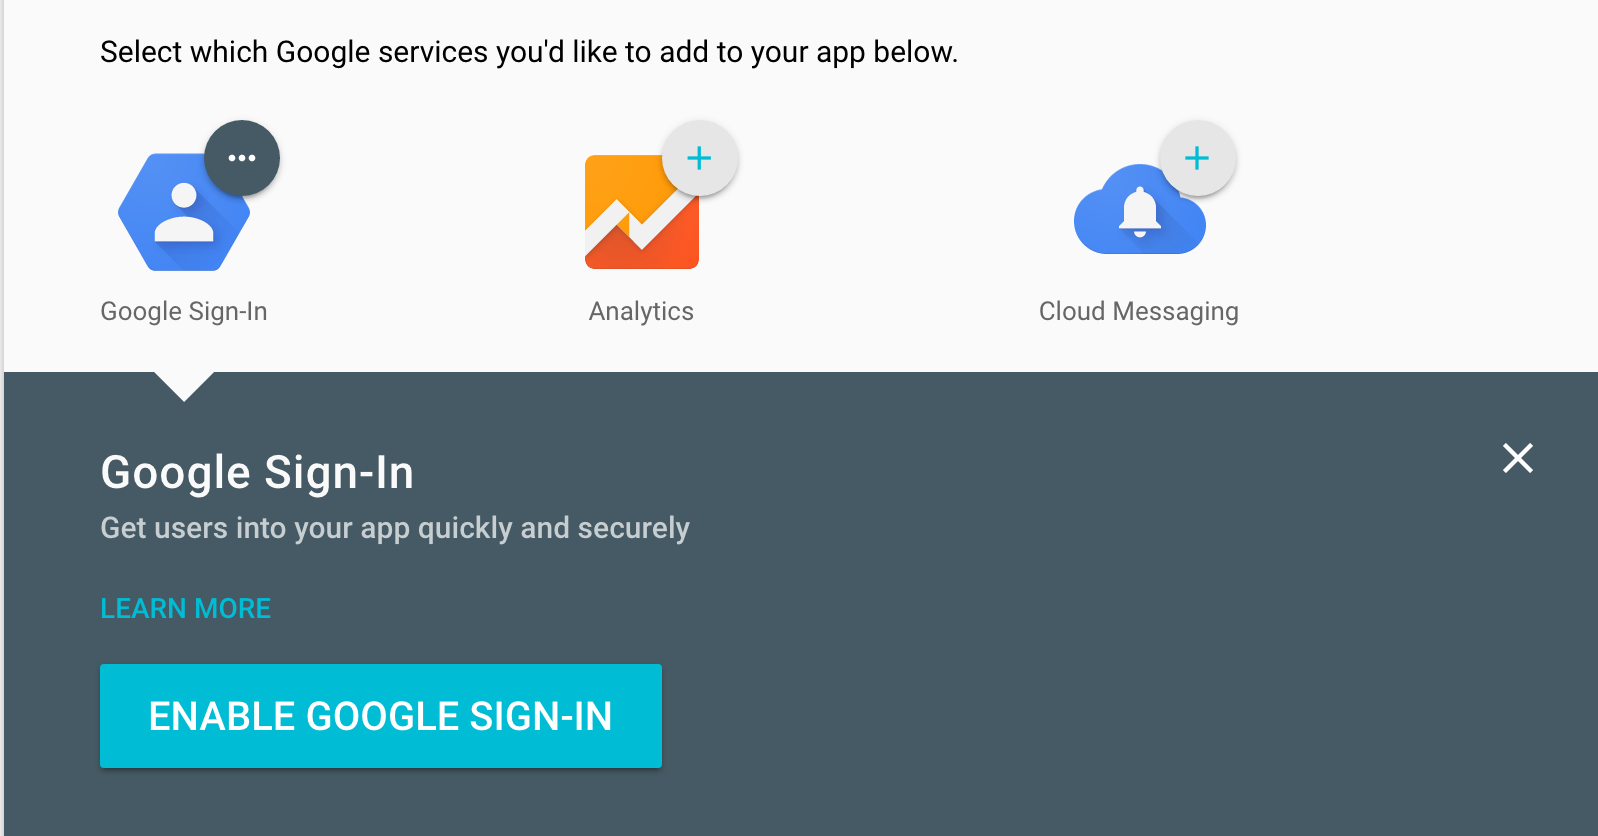 Enable Google Sign-In